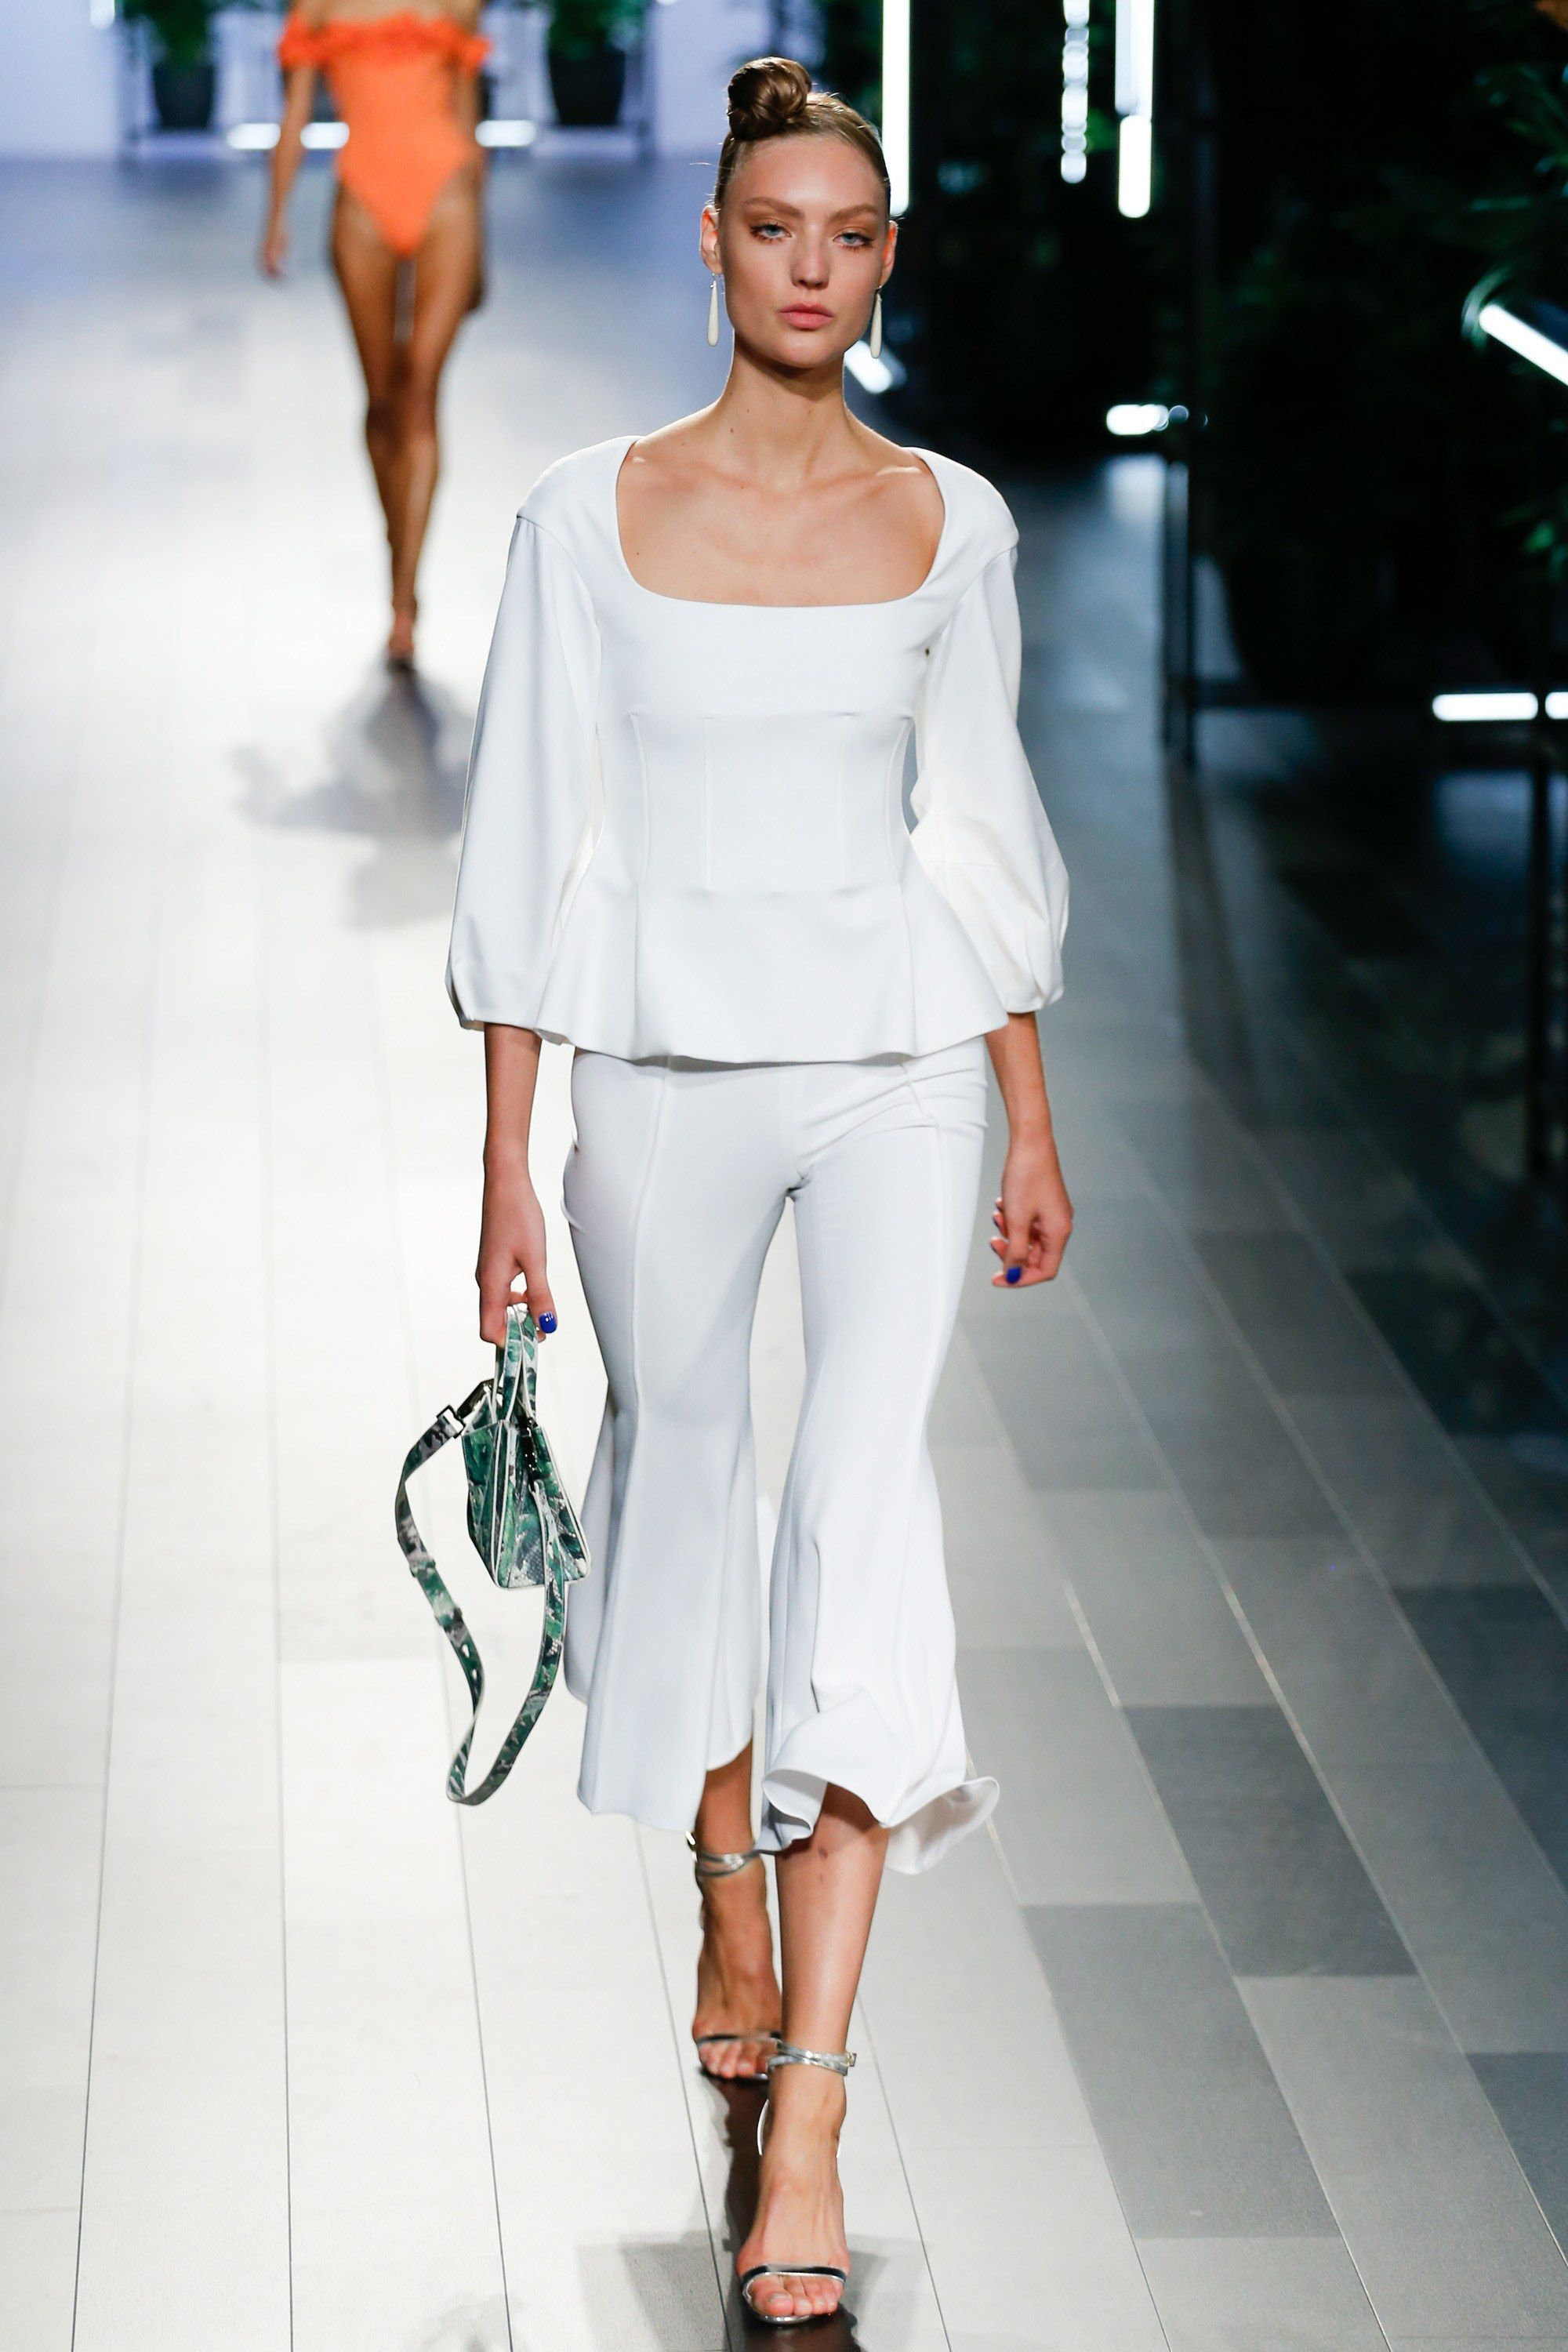 CUSHNIE ET OCHS SPRING SUMMER 2018 RTW COLLECTION SS18 RUNWAY FOOTWEAR  SHOES HANDBAGS LUXURY LEATHER GOODS FLORAL FLORALS VOGUE NYFW NYC NEW YORK  FASHION ... 2c256759a3b